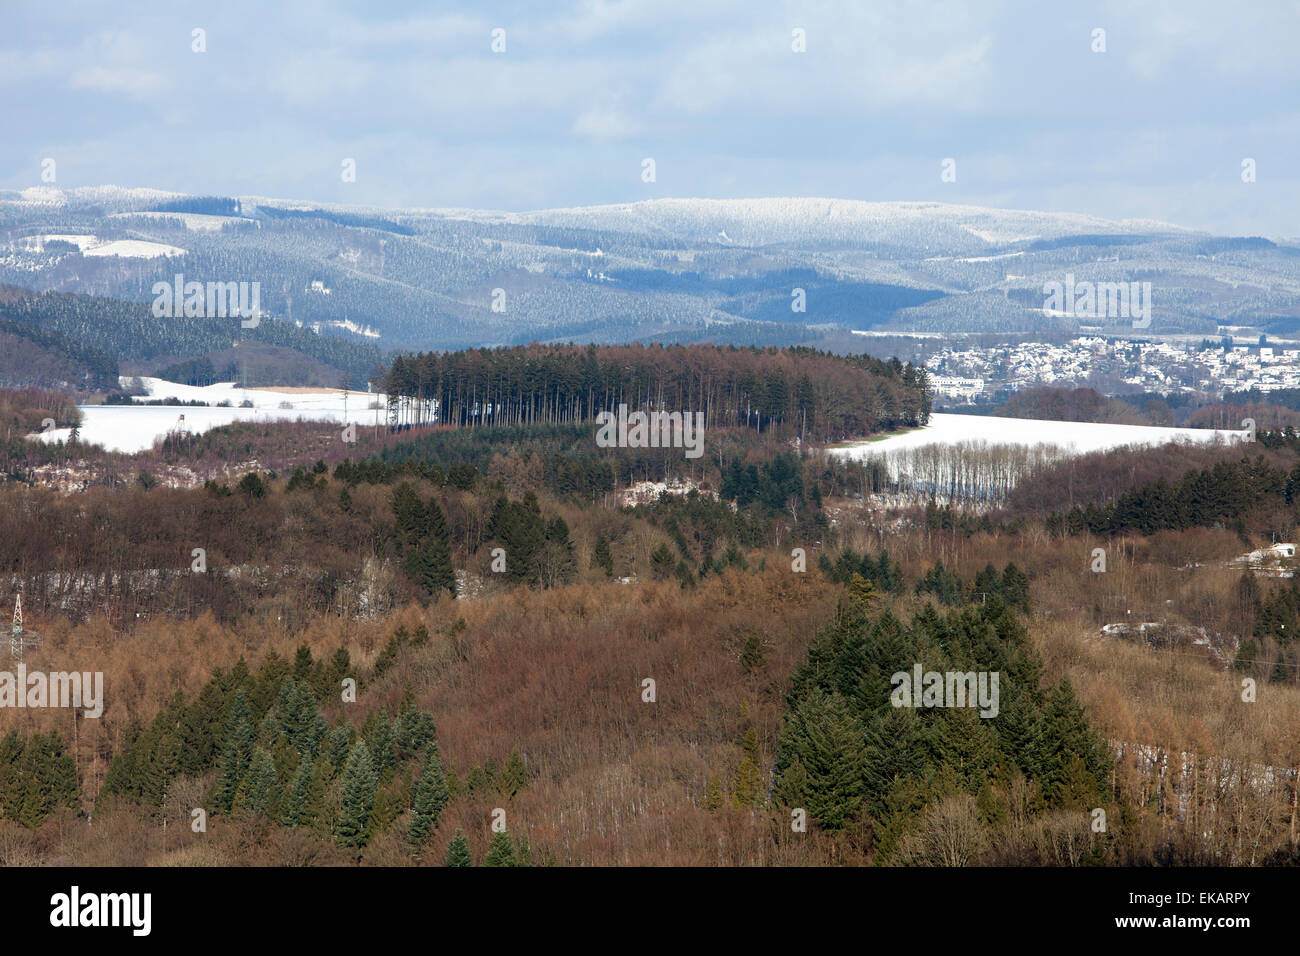 Overlooking Attendorn, Hanseatic City, Sauerland region, North Rhine-Westphalia, Germany, Europe, - Stock Image